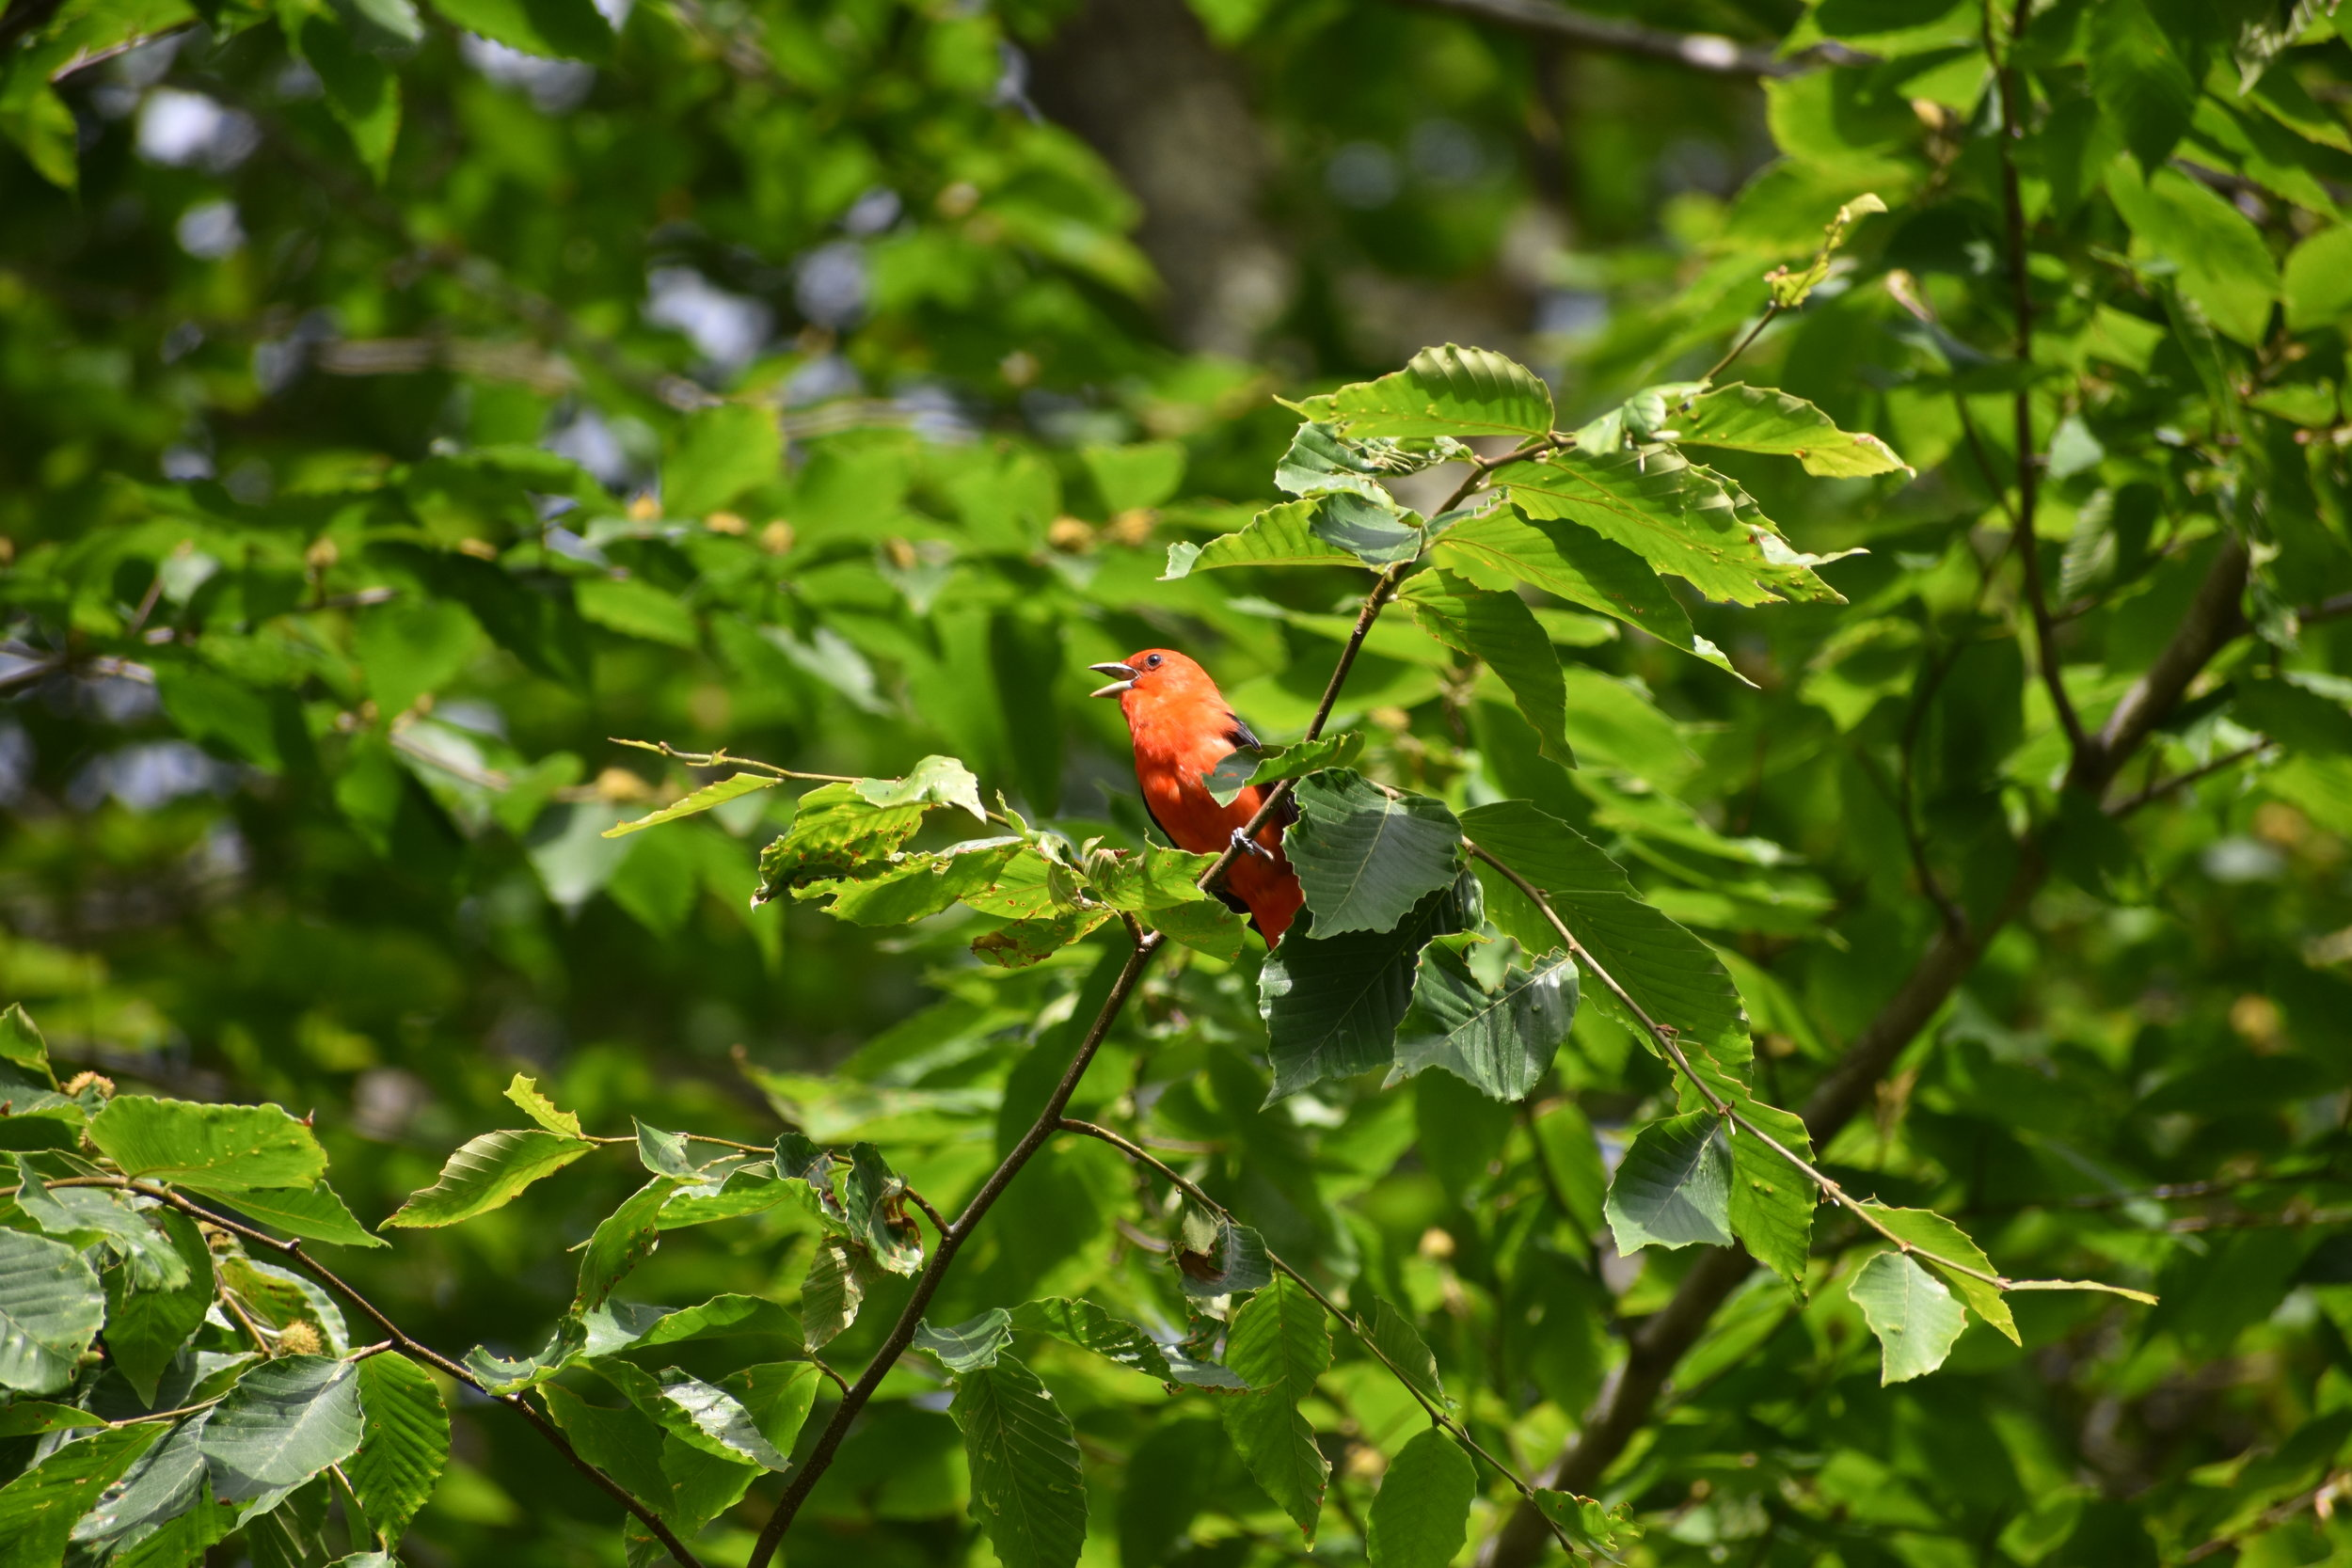 Scarlet Tanager singing in a Beech tree